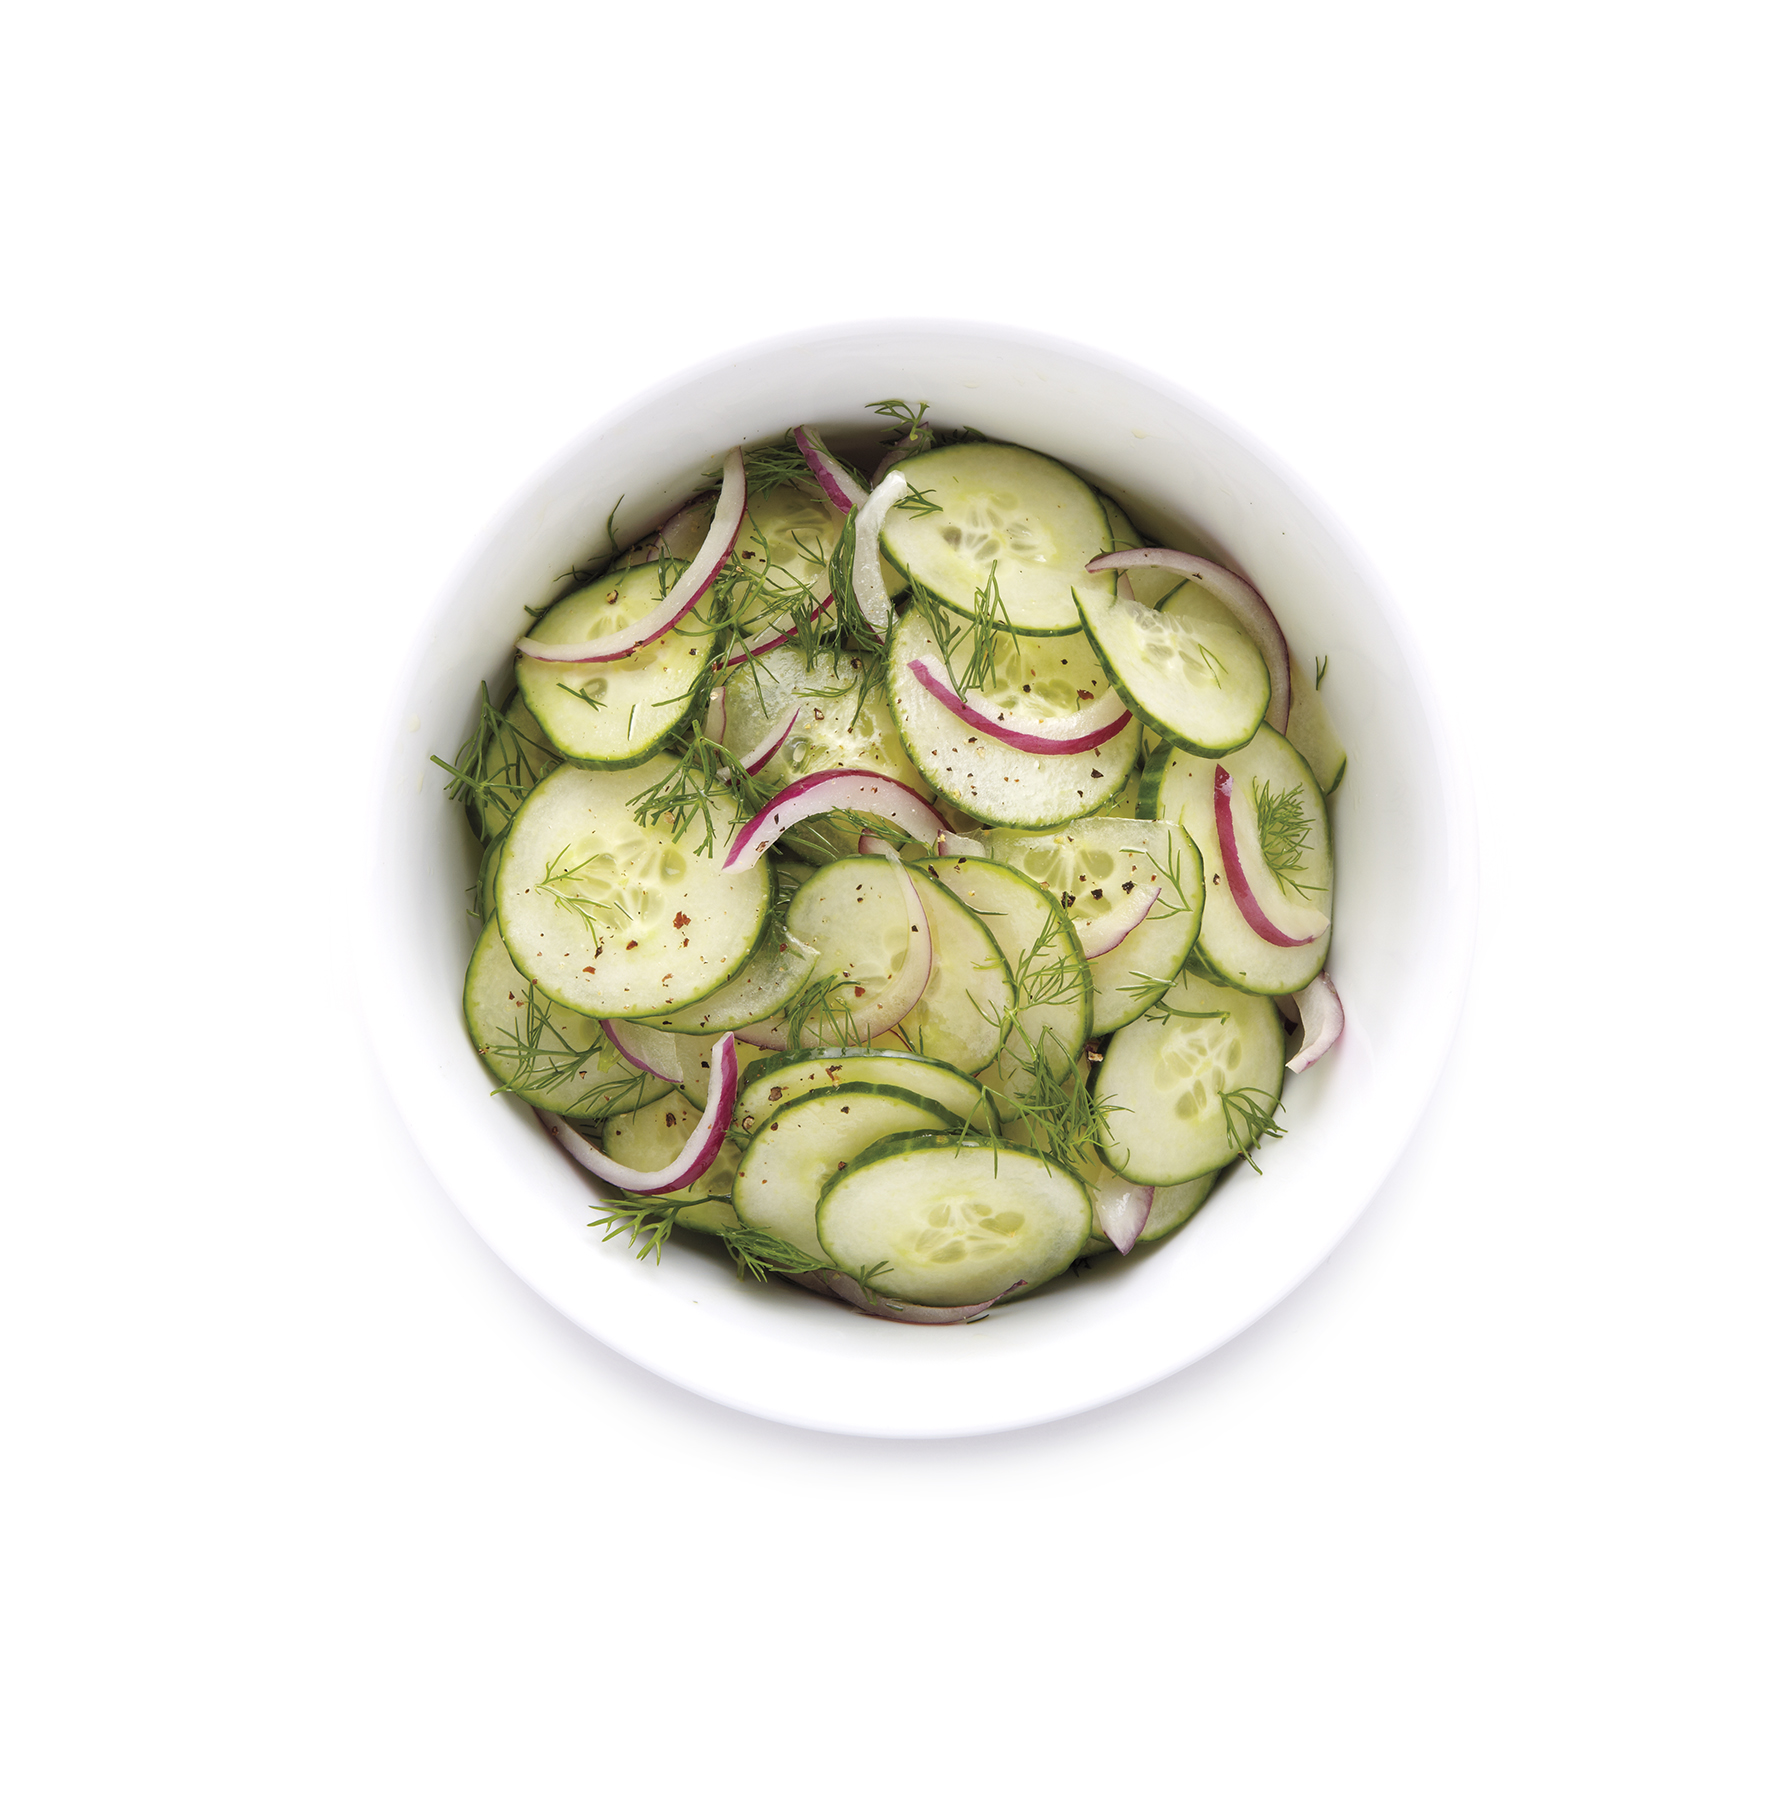 Tangy Cucumber-Dill Salad